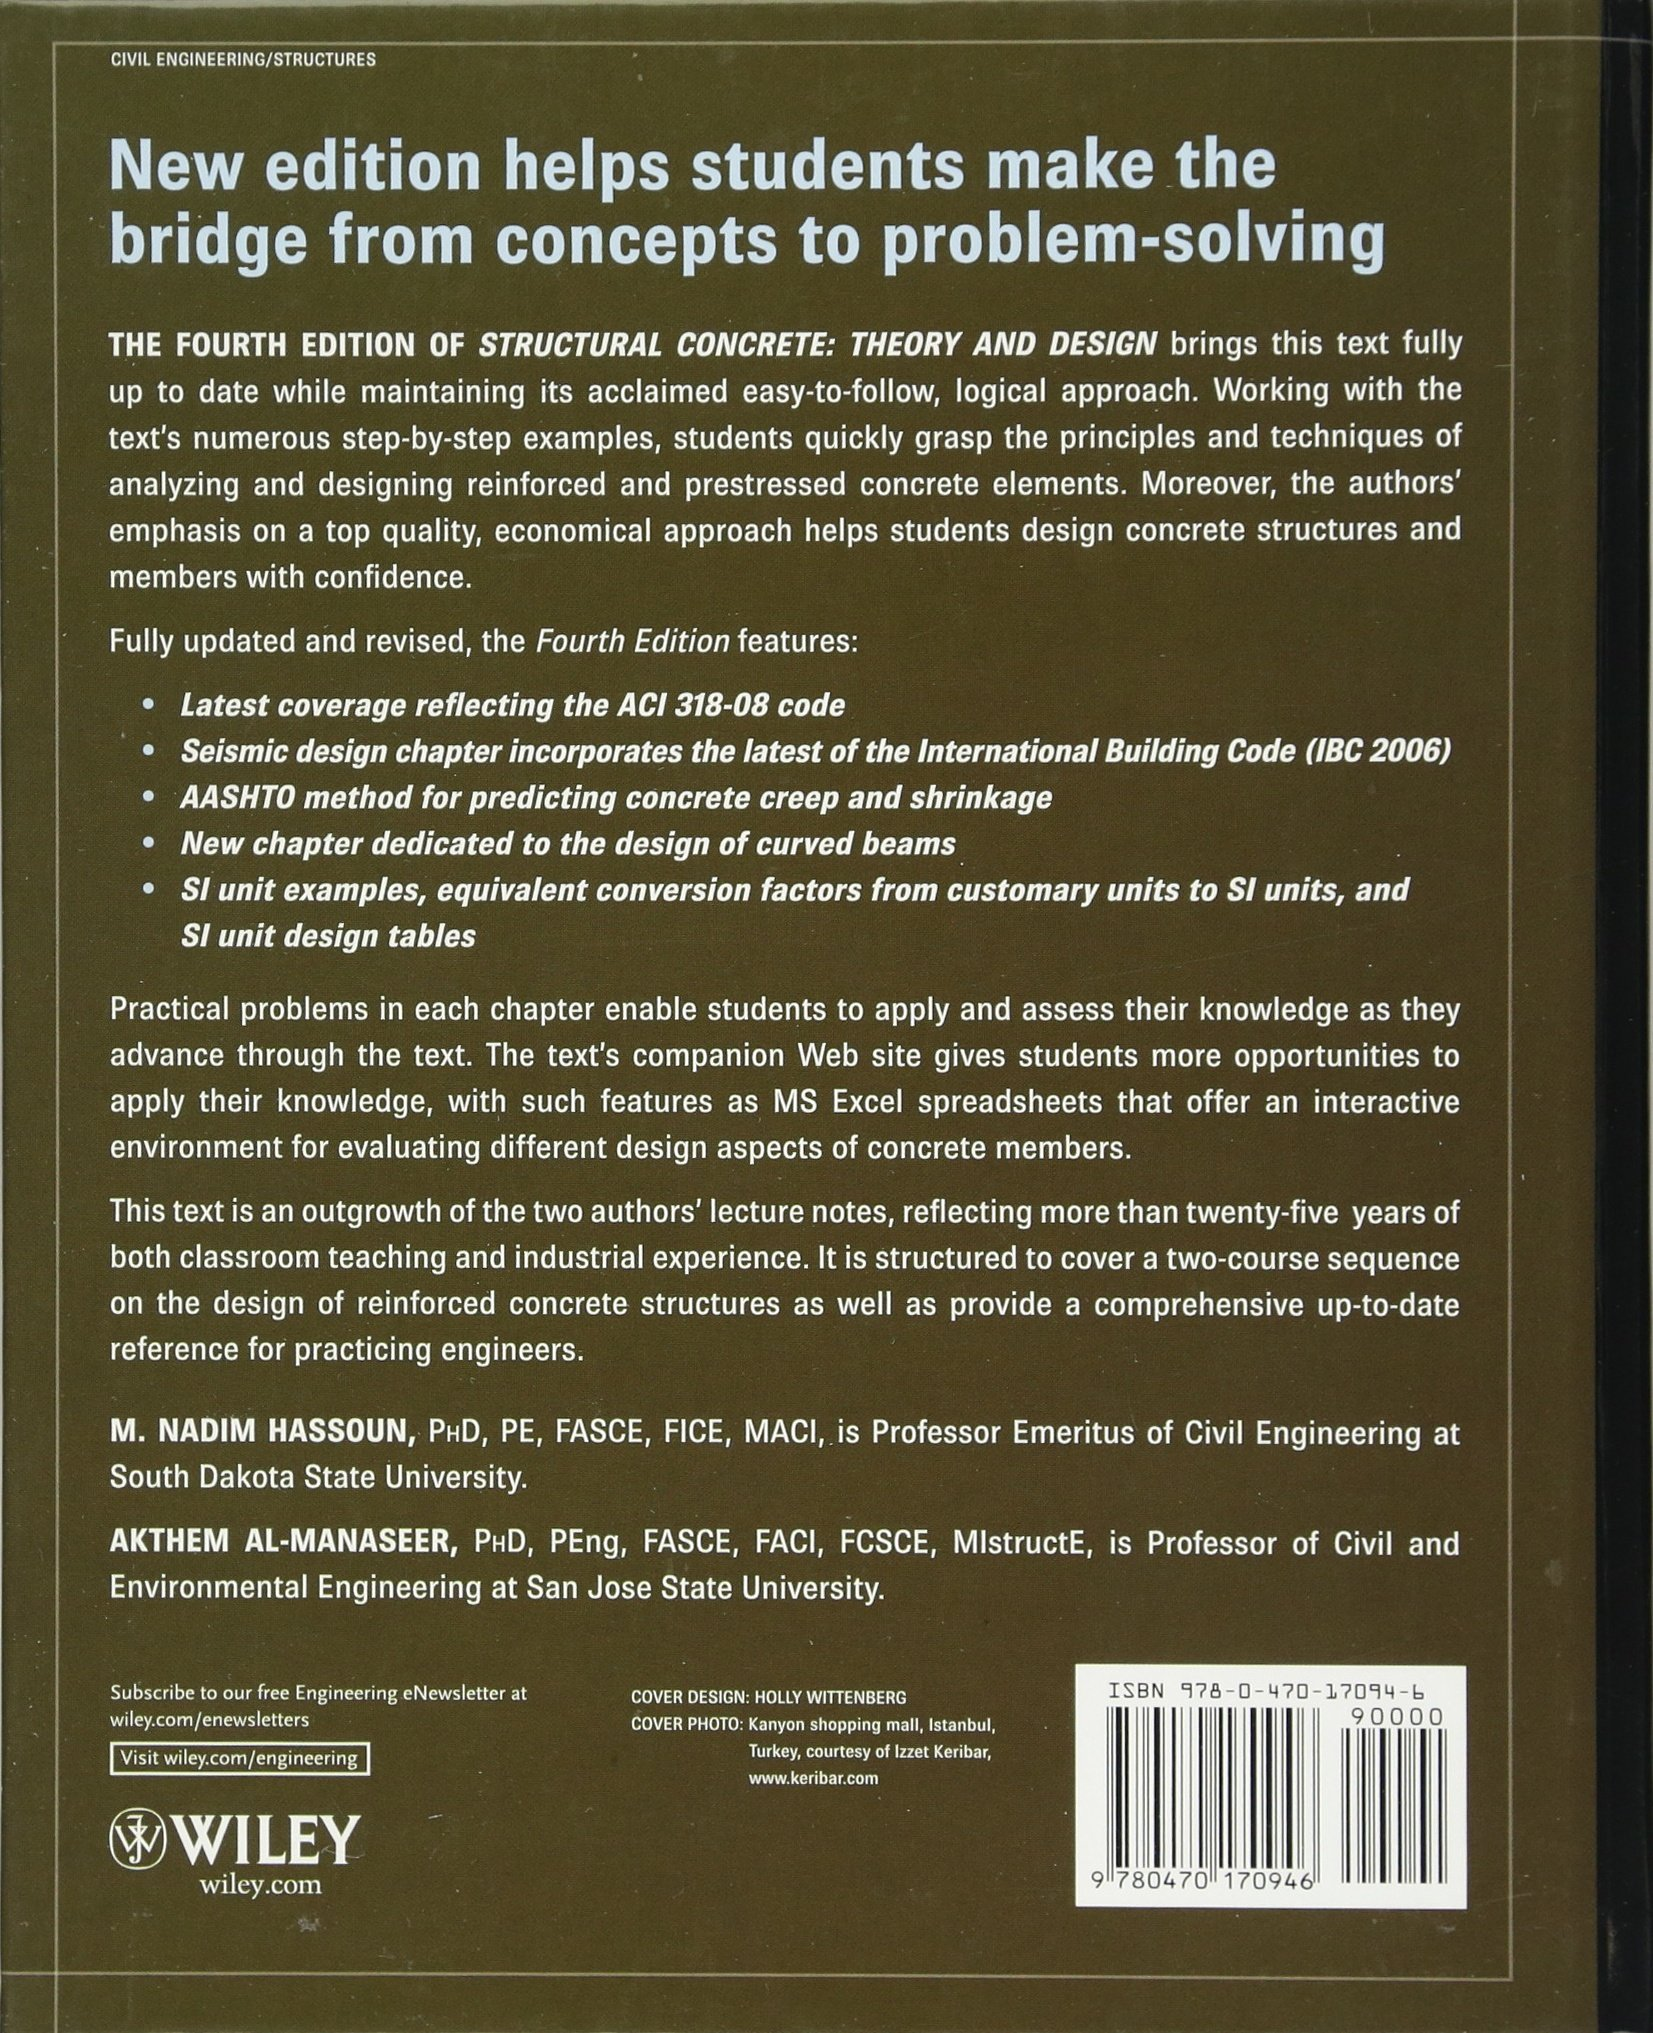 Buy Structural Concrete: Theory and Design Book Online at